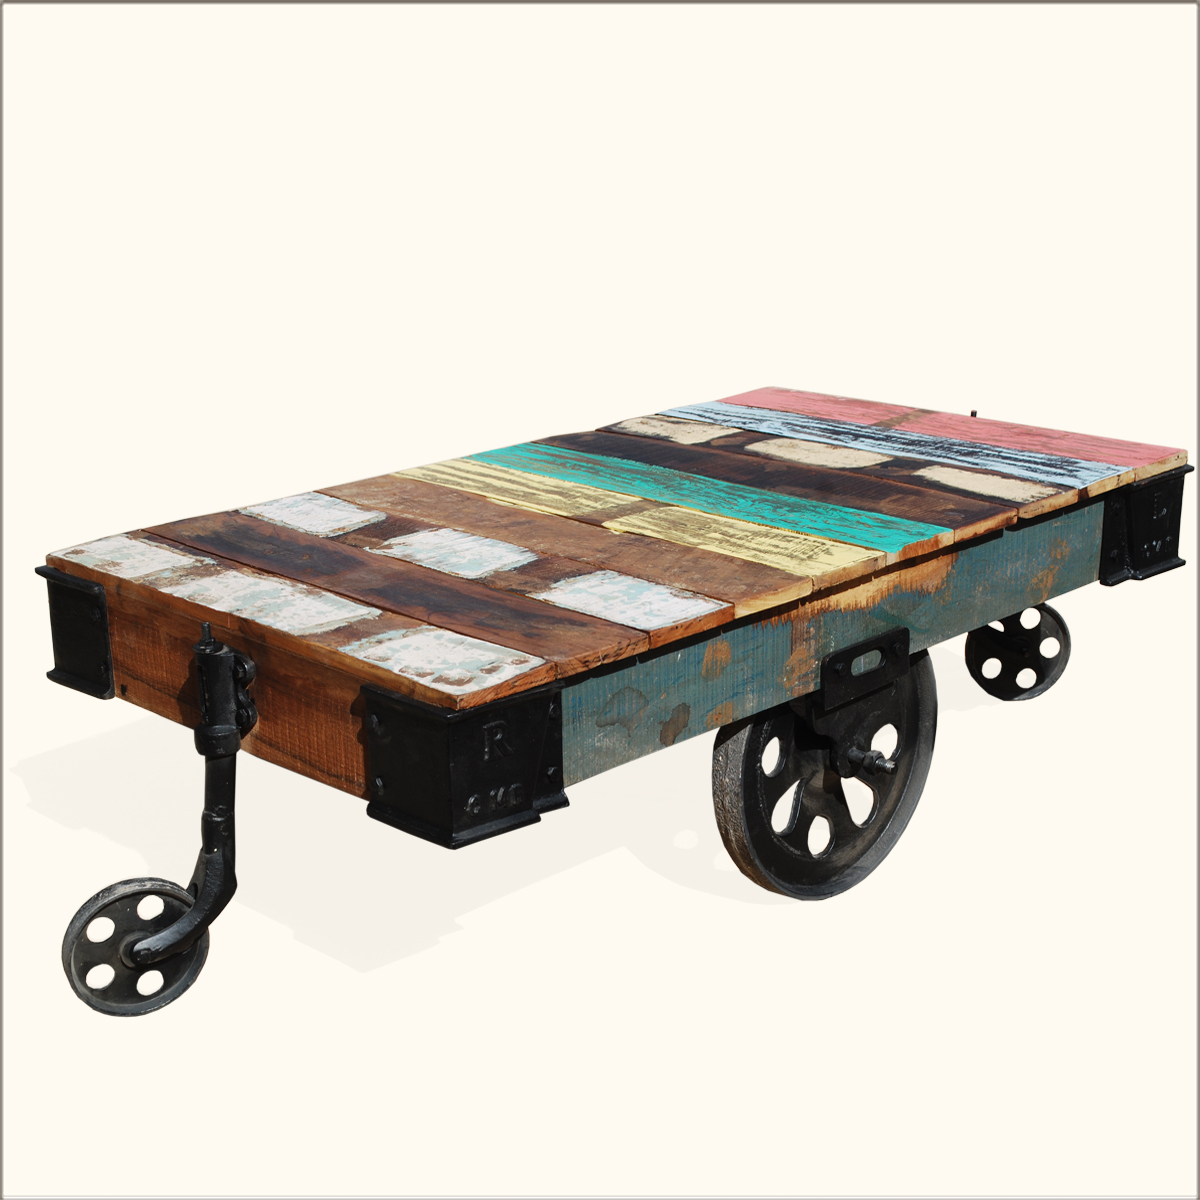 Rustic Wood Rolling Factory Cart Industrial Coffee Table On Wheels Furniture